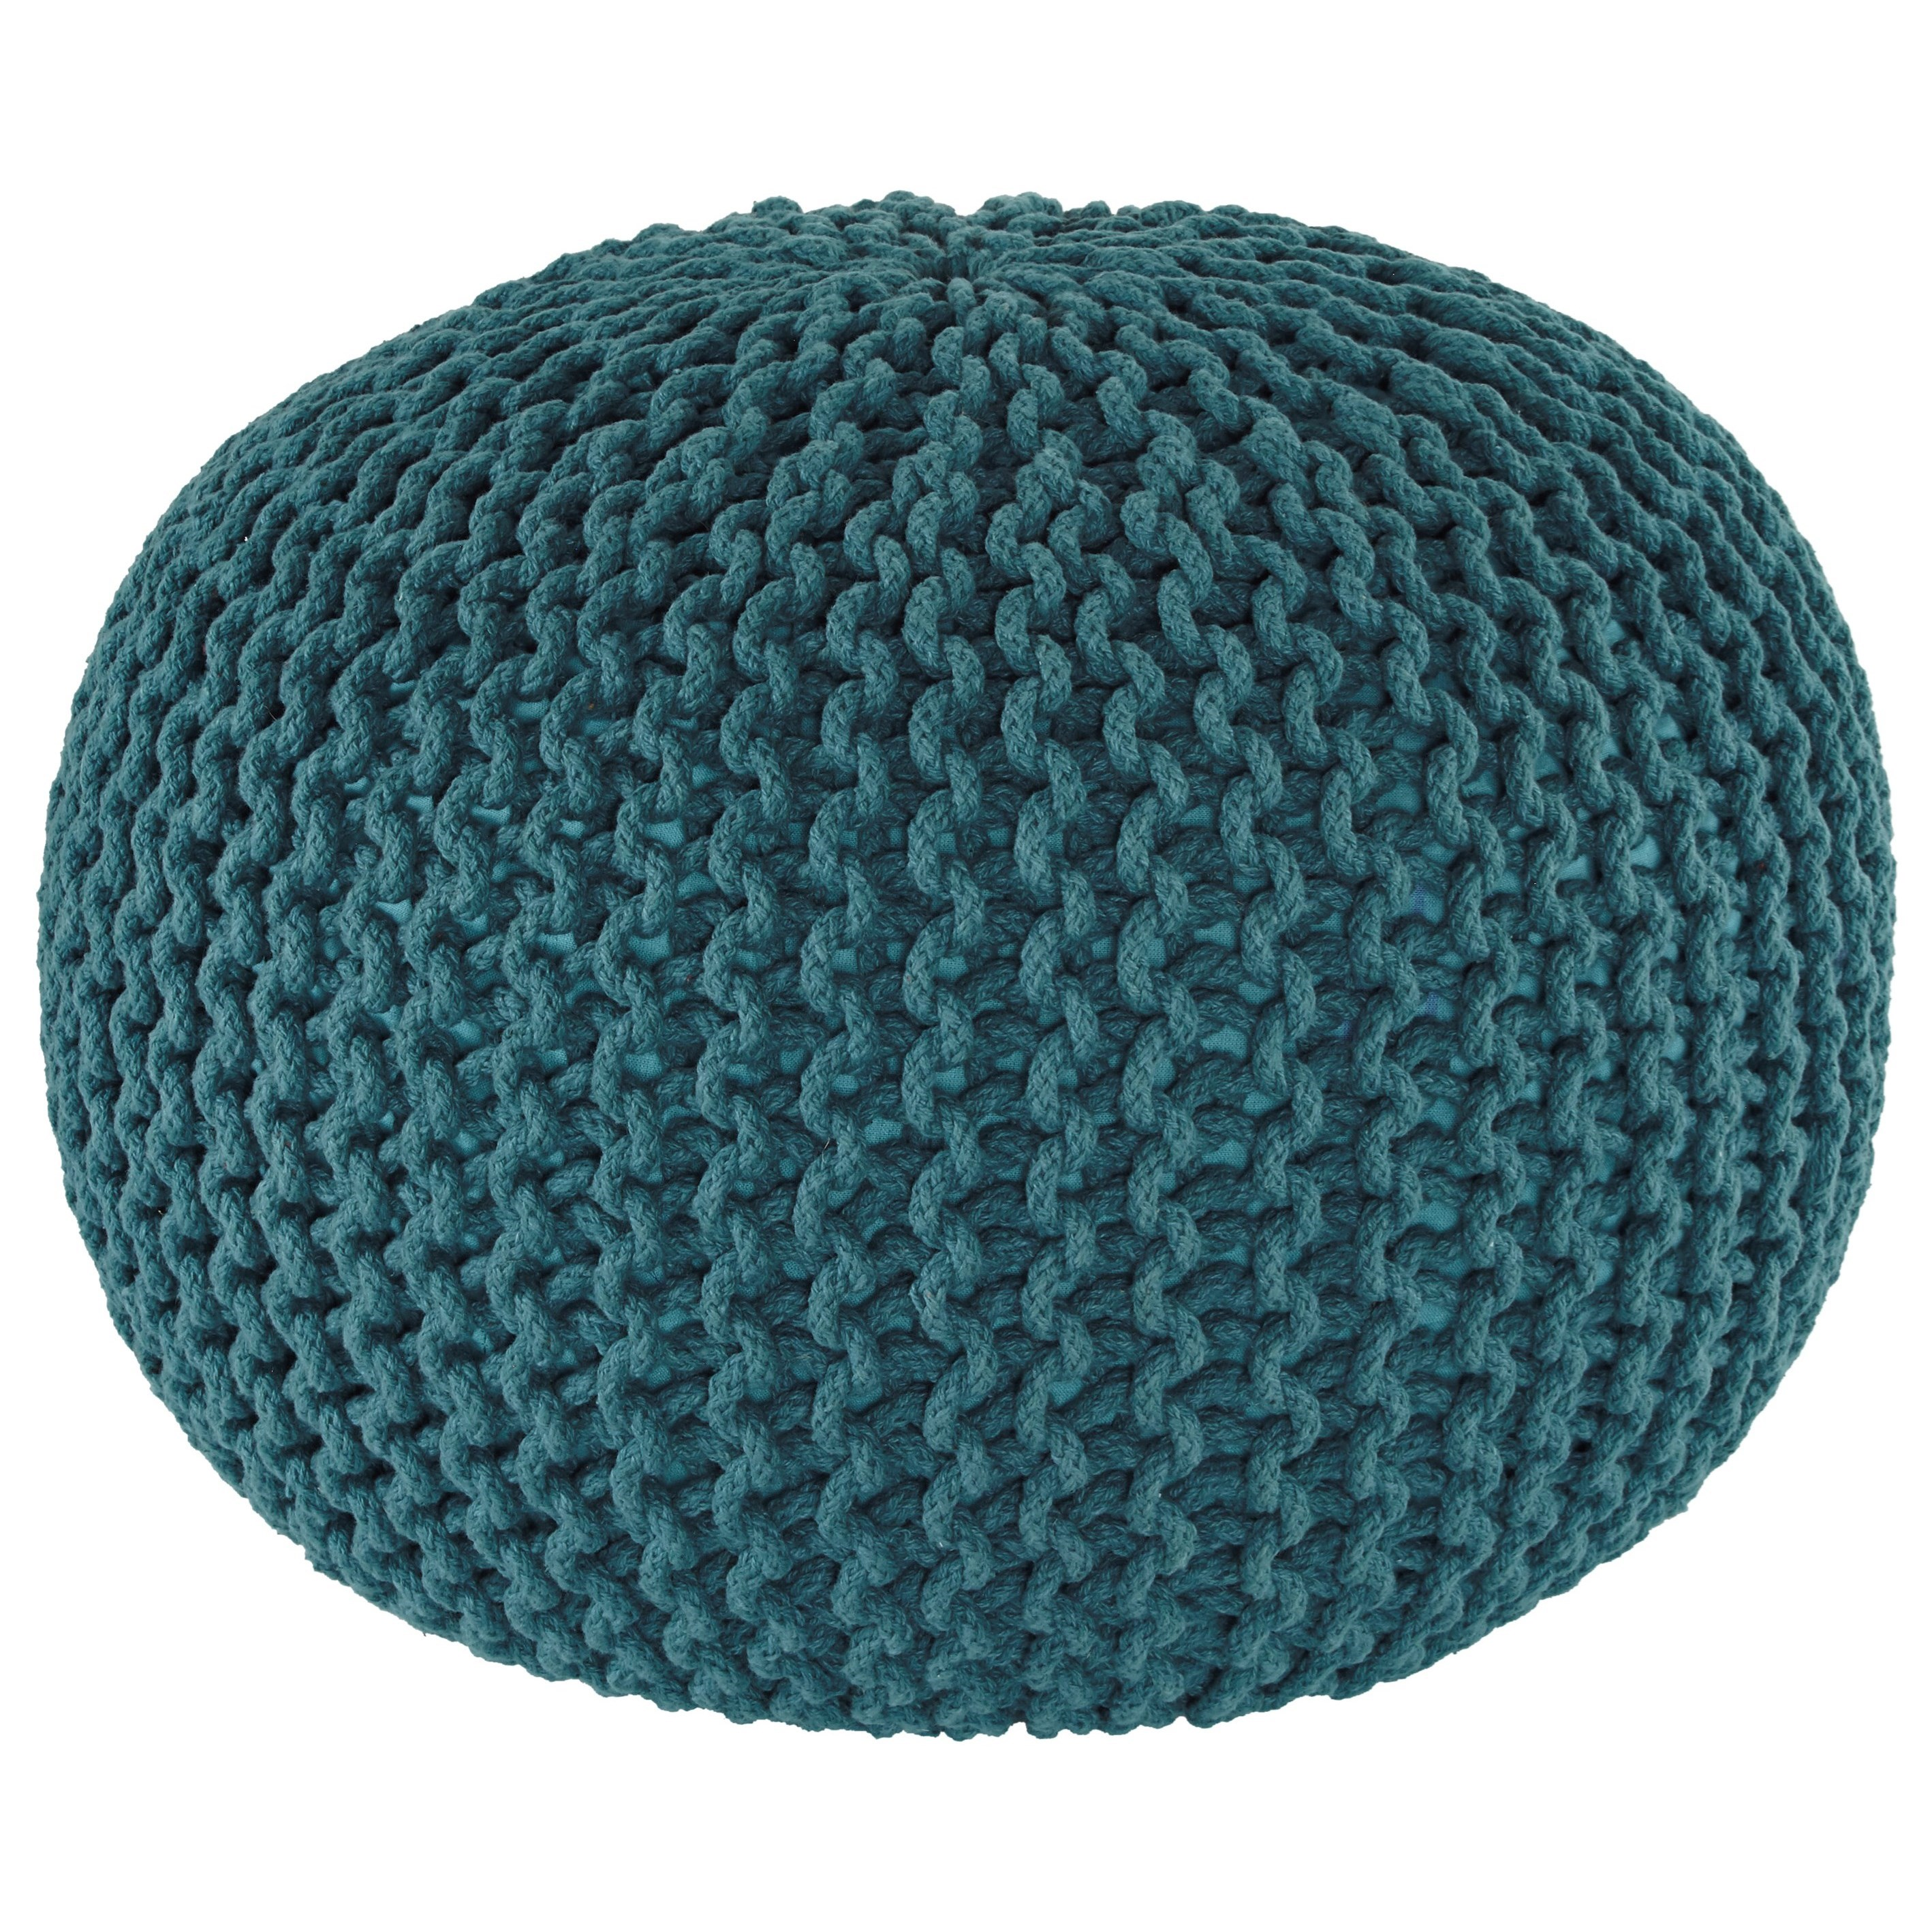 Signature design by ashley poufs a1000373 nils teal pouf northeast factory direct poufs - Design pouf ...